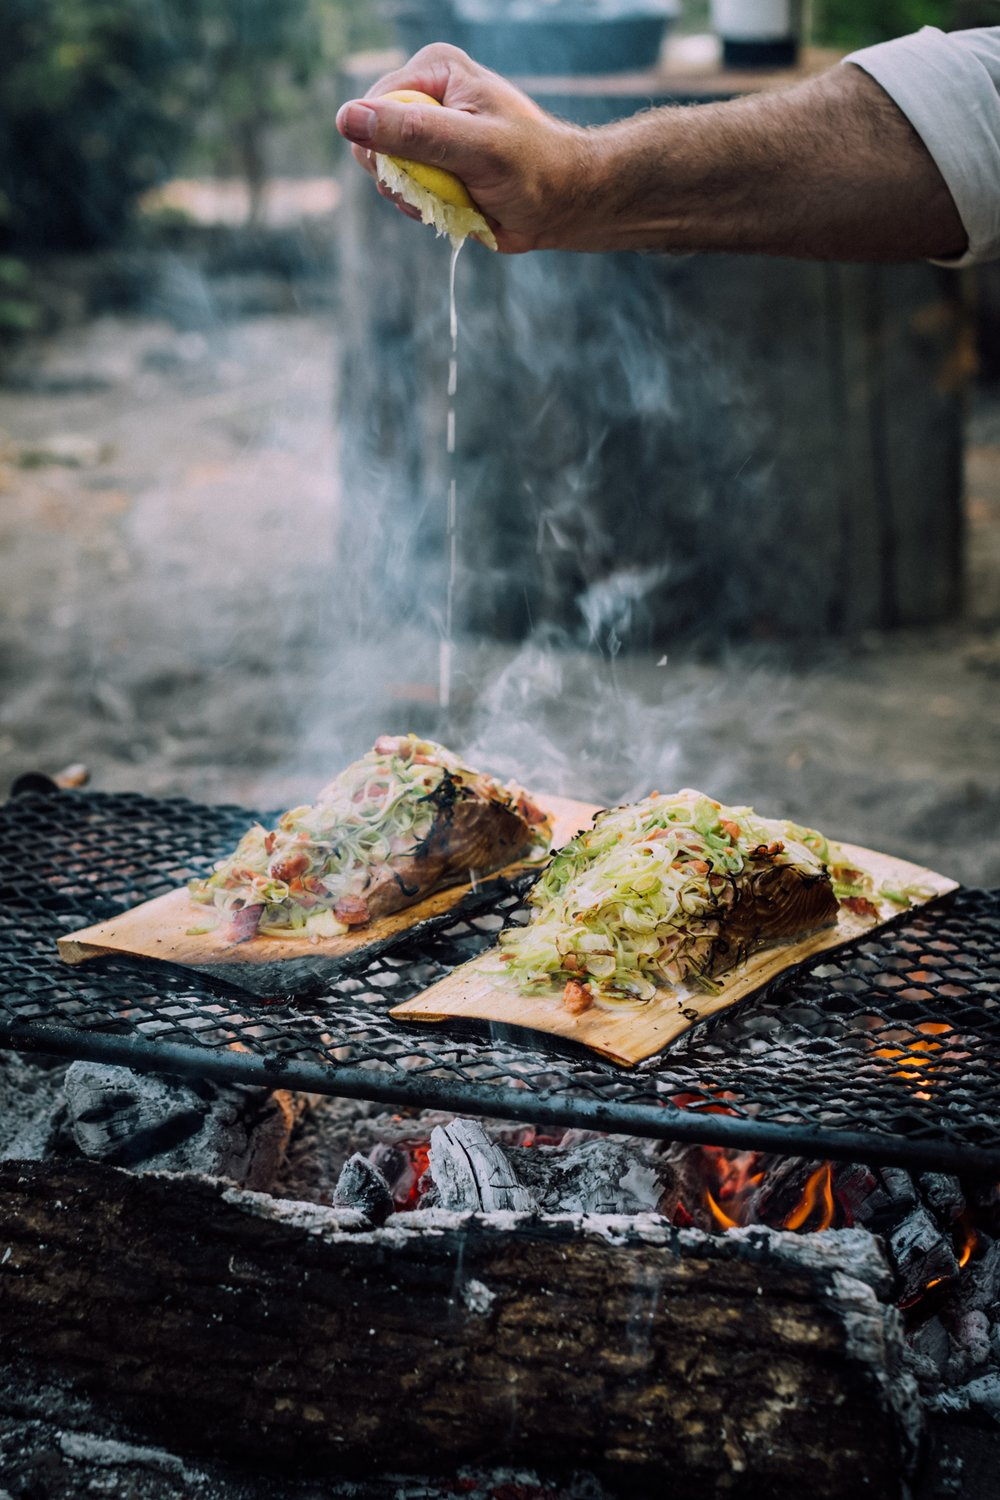 ARGENTINA - In a country that produces some of the world's best wine and steak, journey through its northern and southern-most regions with celebrated chefs and join locals in their love for food, a central element of Argentine culture.